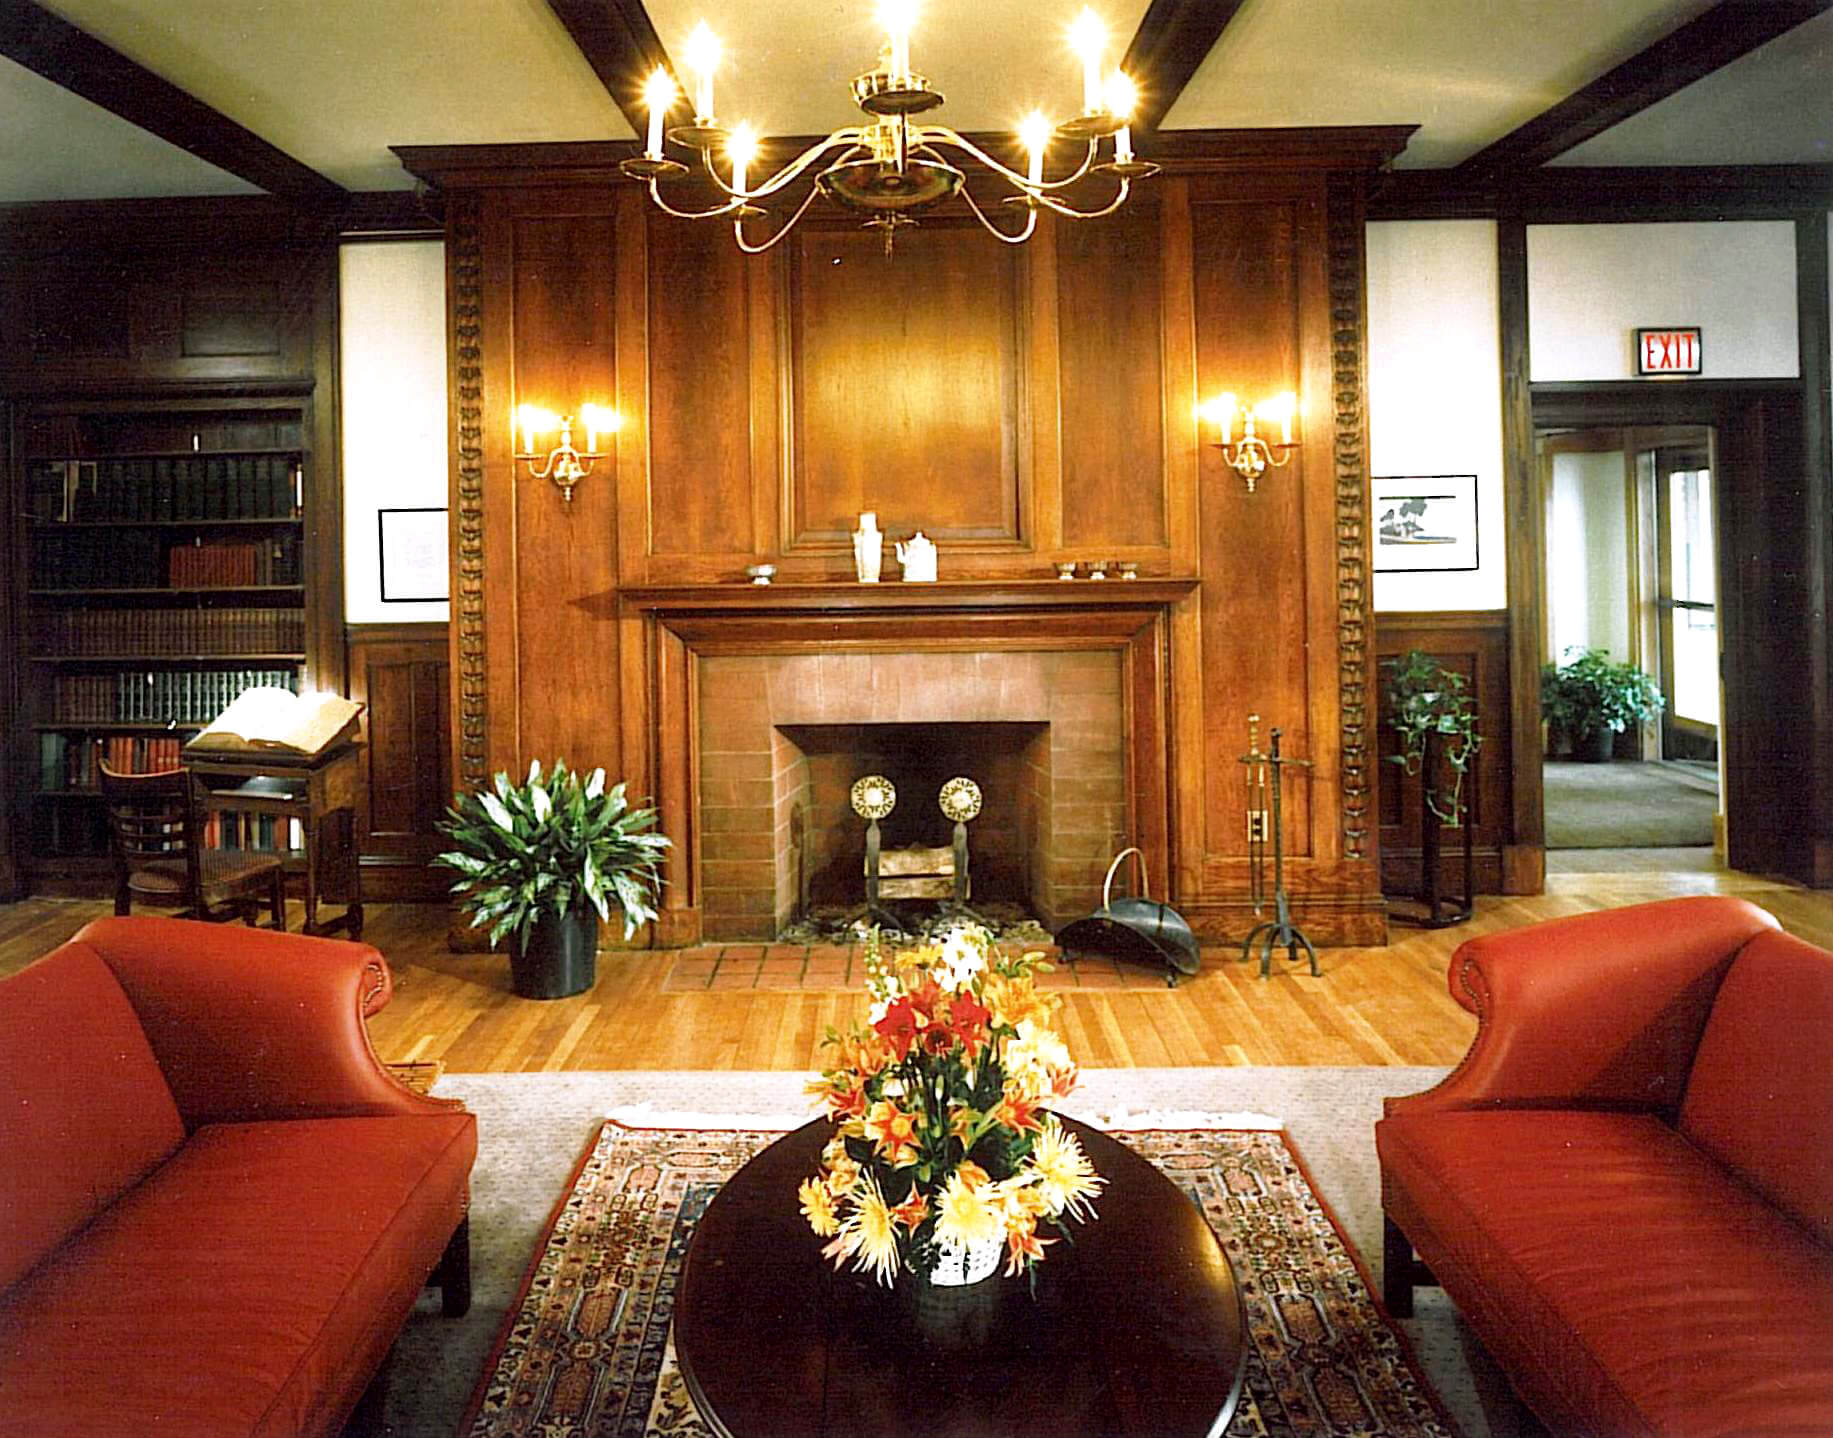 Interior view of a communal living area in one of the houses on Radcliff Quadrangle, with red couches around a coffee talve in teh foreground, and classical wooden fireplace in the background, with a bookshelf to the left.